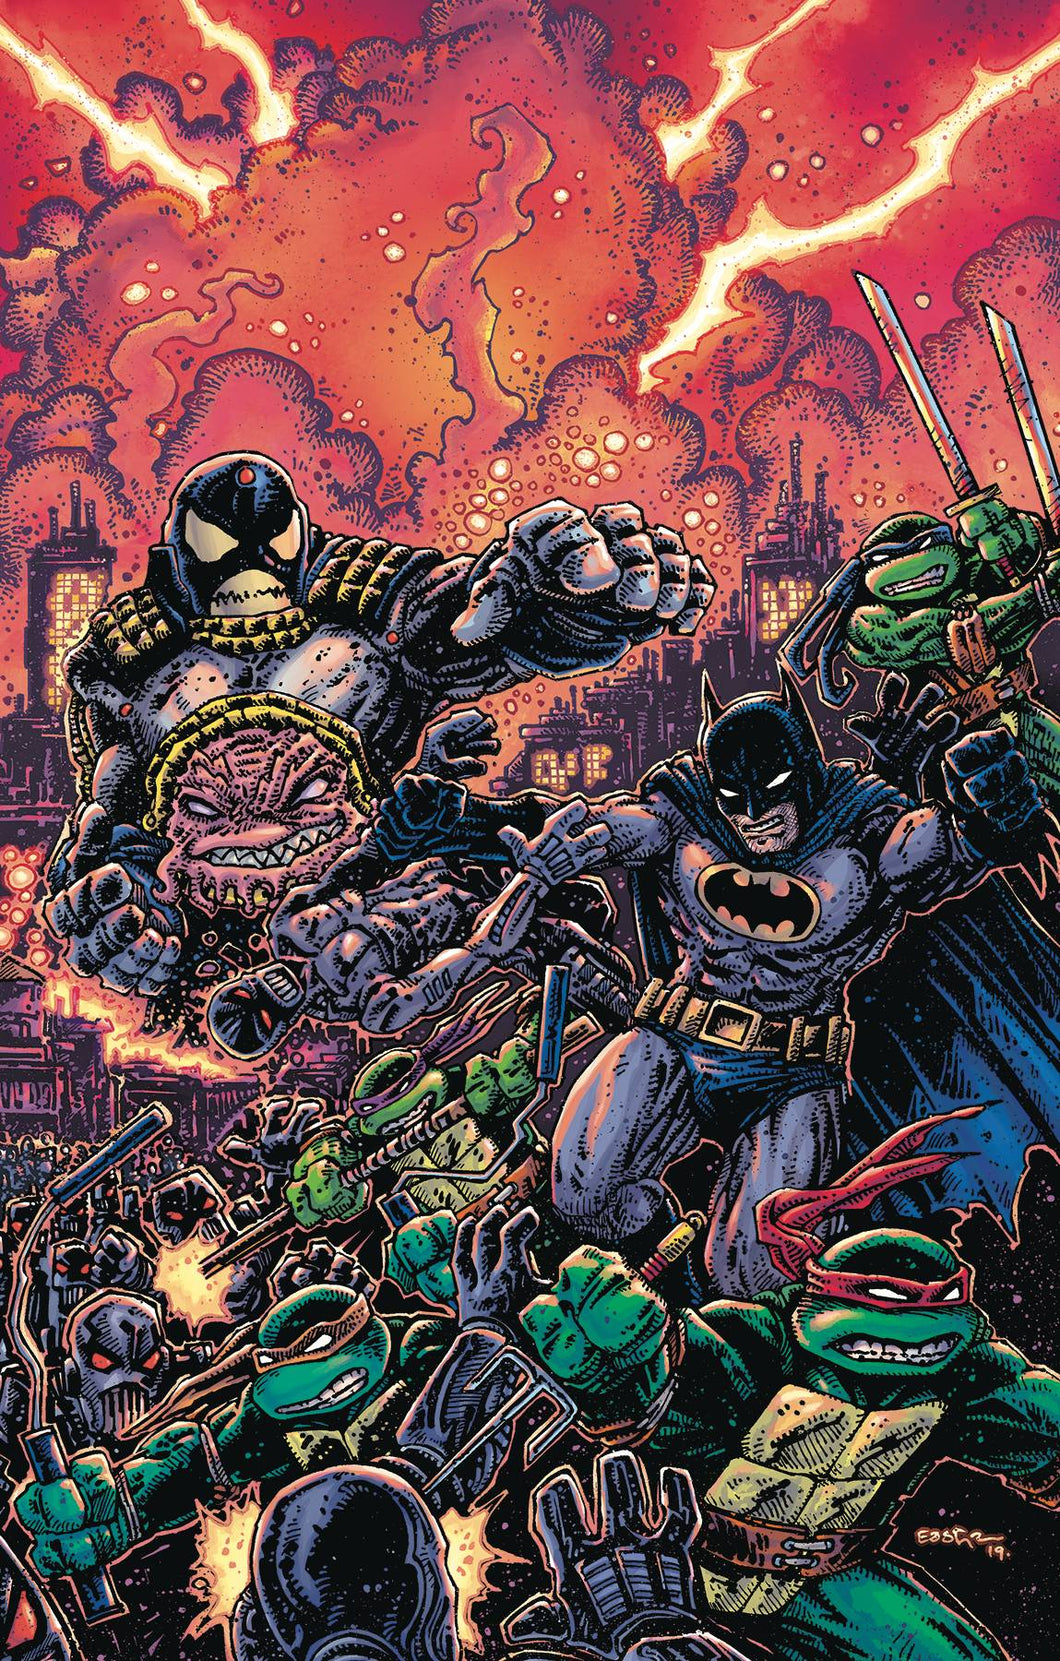 BATMAN TEENAGE MUTANT NINJA TURTLES III #6 (OF 6) VAR ED 10/02/19 FOC 09/09/19